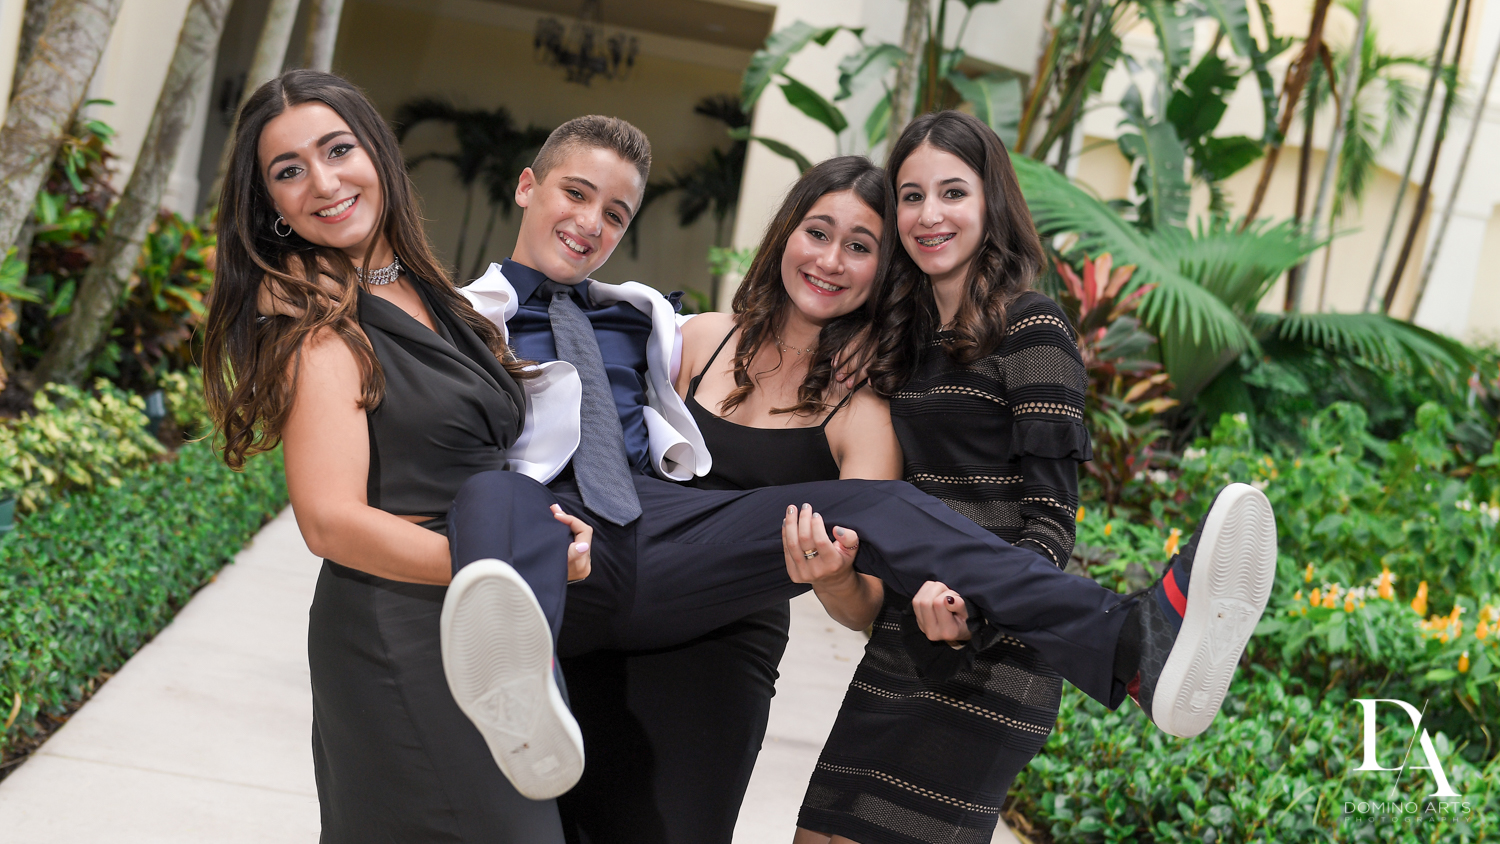 Fun pics at Luxury B'Nai Mitzvah at Woodfield Country Club by Domino Arts Photography